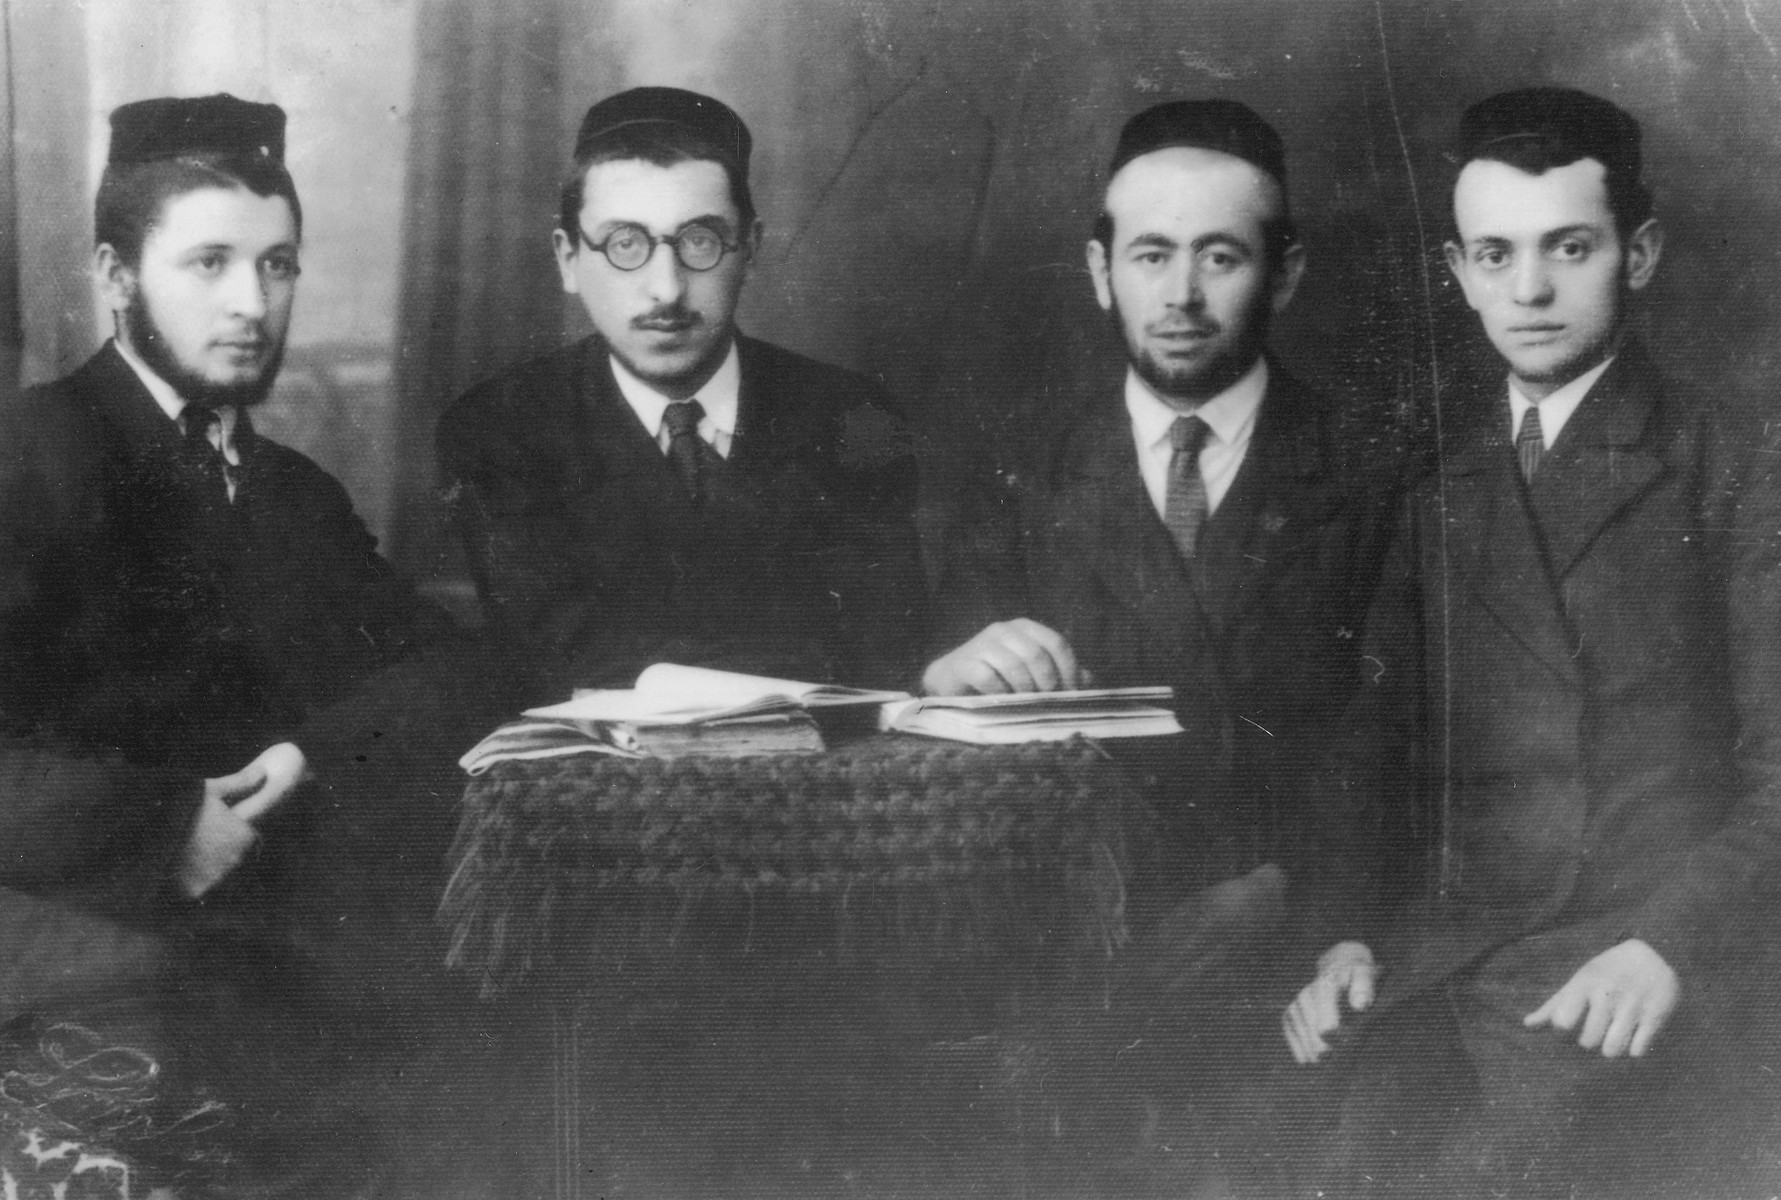 Studio portrait of four students from the Tarnopol Yeshiva with religious texts.  Pictured on the far right is Yitzchok Scharf.